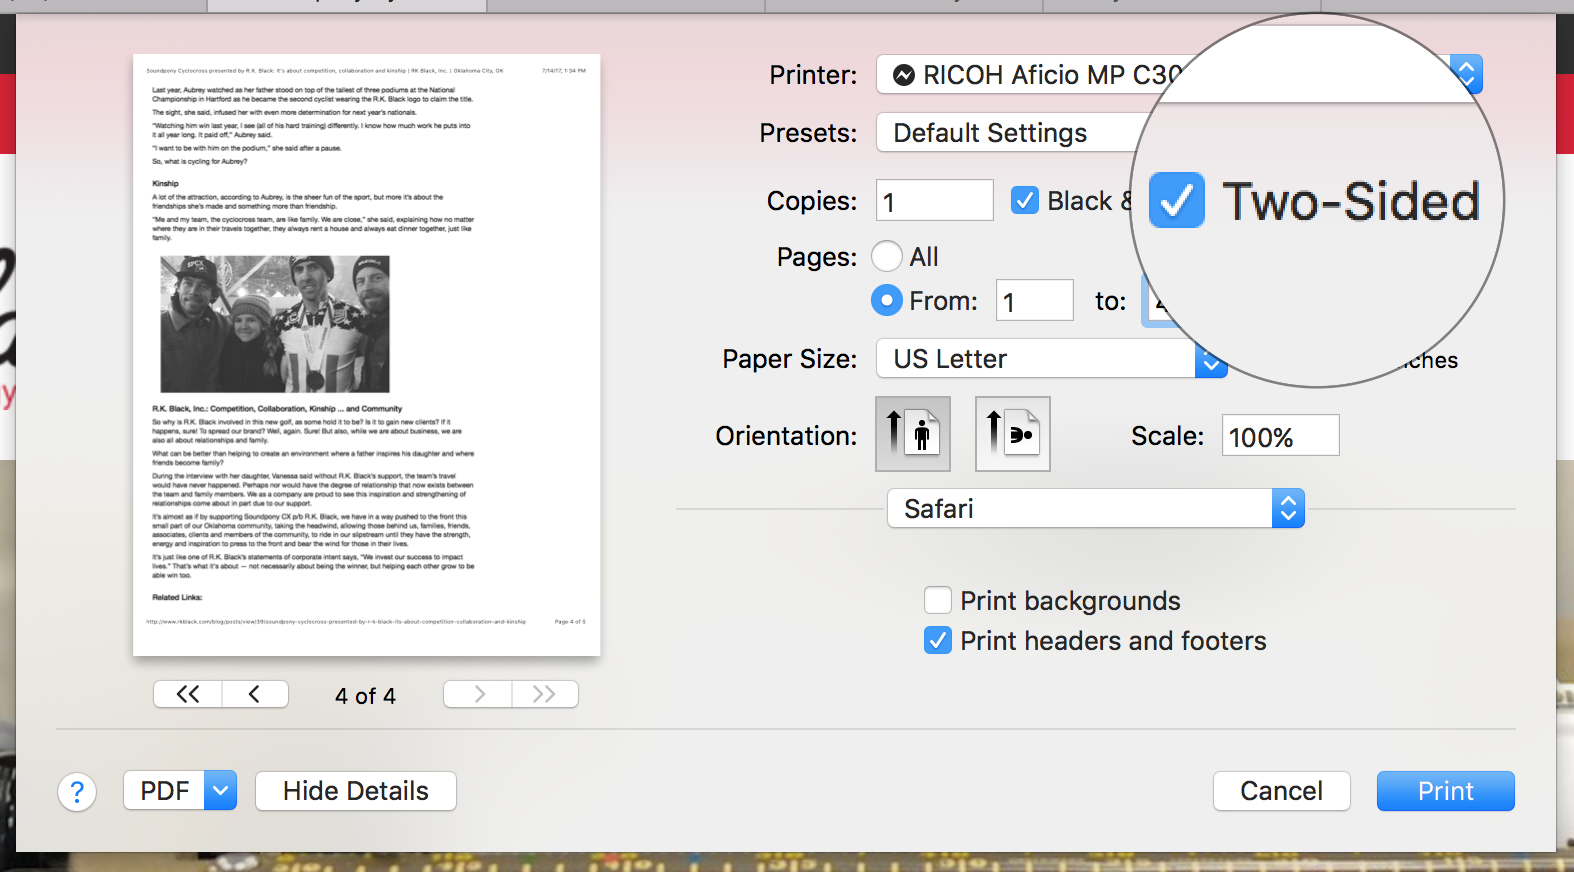 Screen shot of how to set up document to print duplex from a Mac